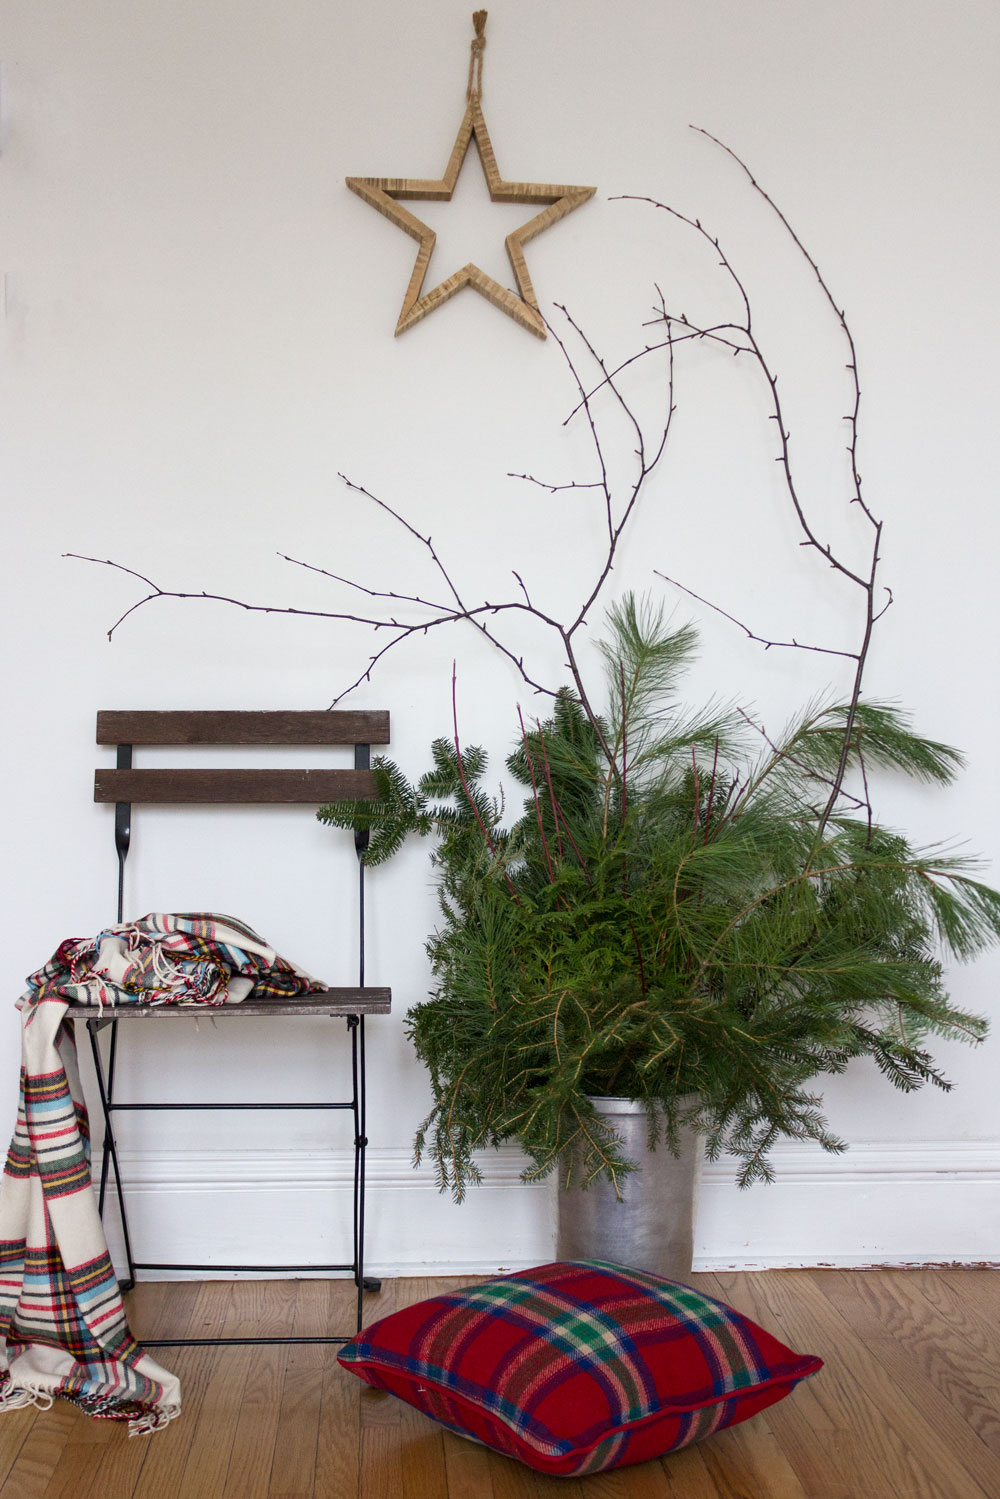 Simplify the Holidays - Decorate Naturally